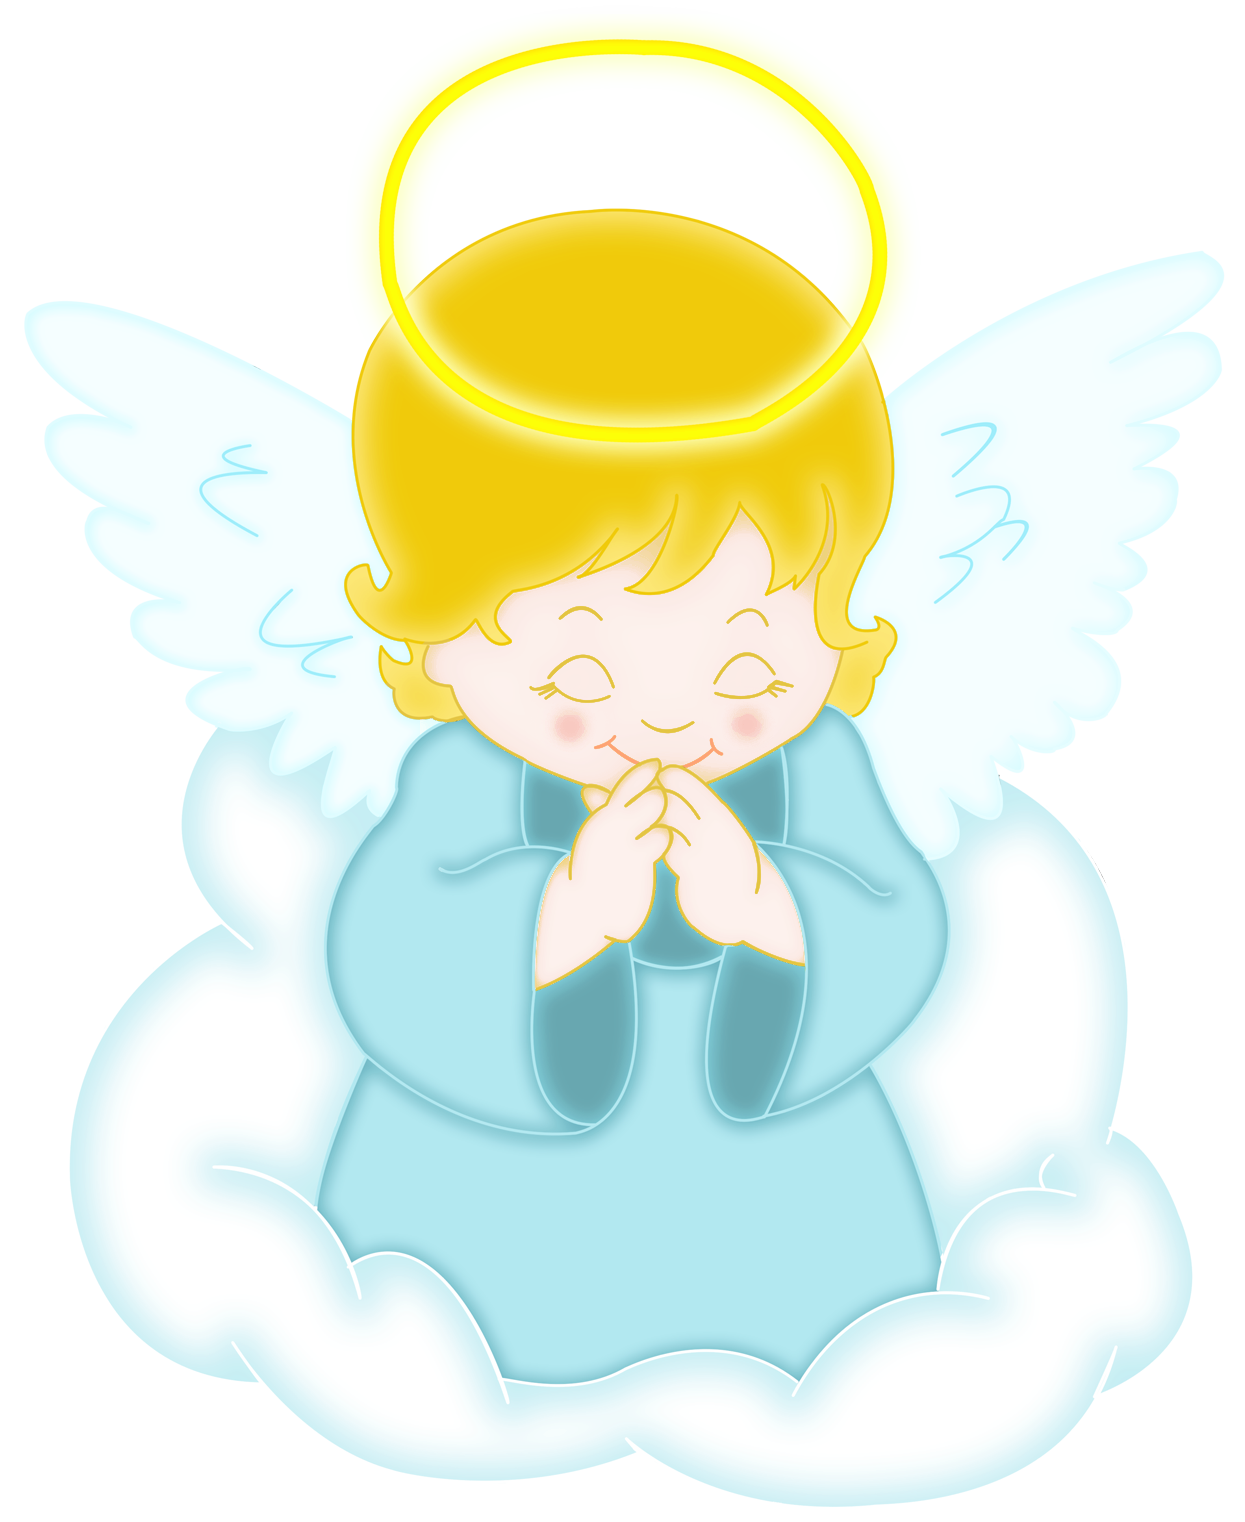 Wing clipart baby angel. At getdrawings com free